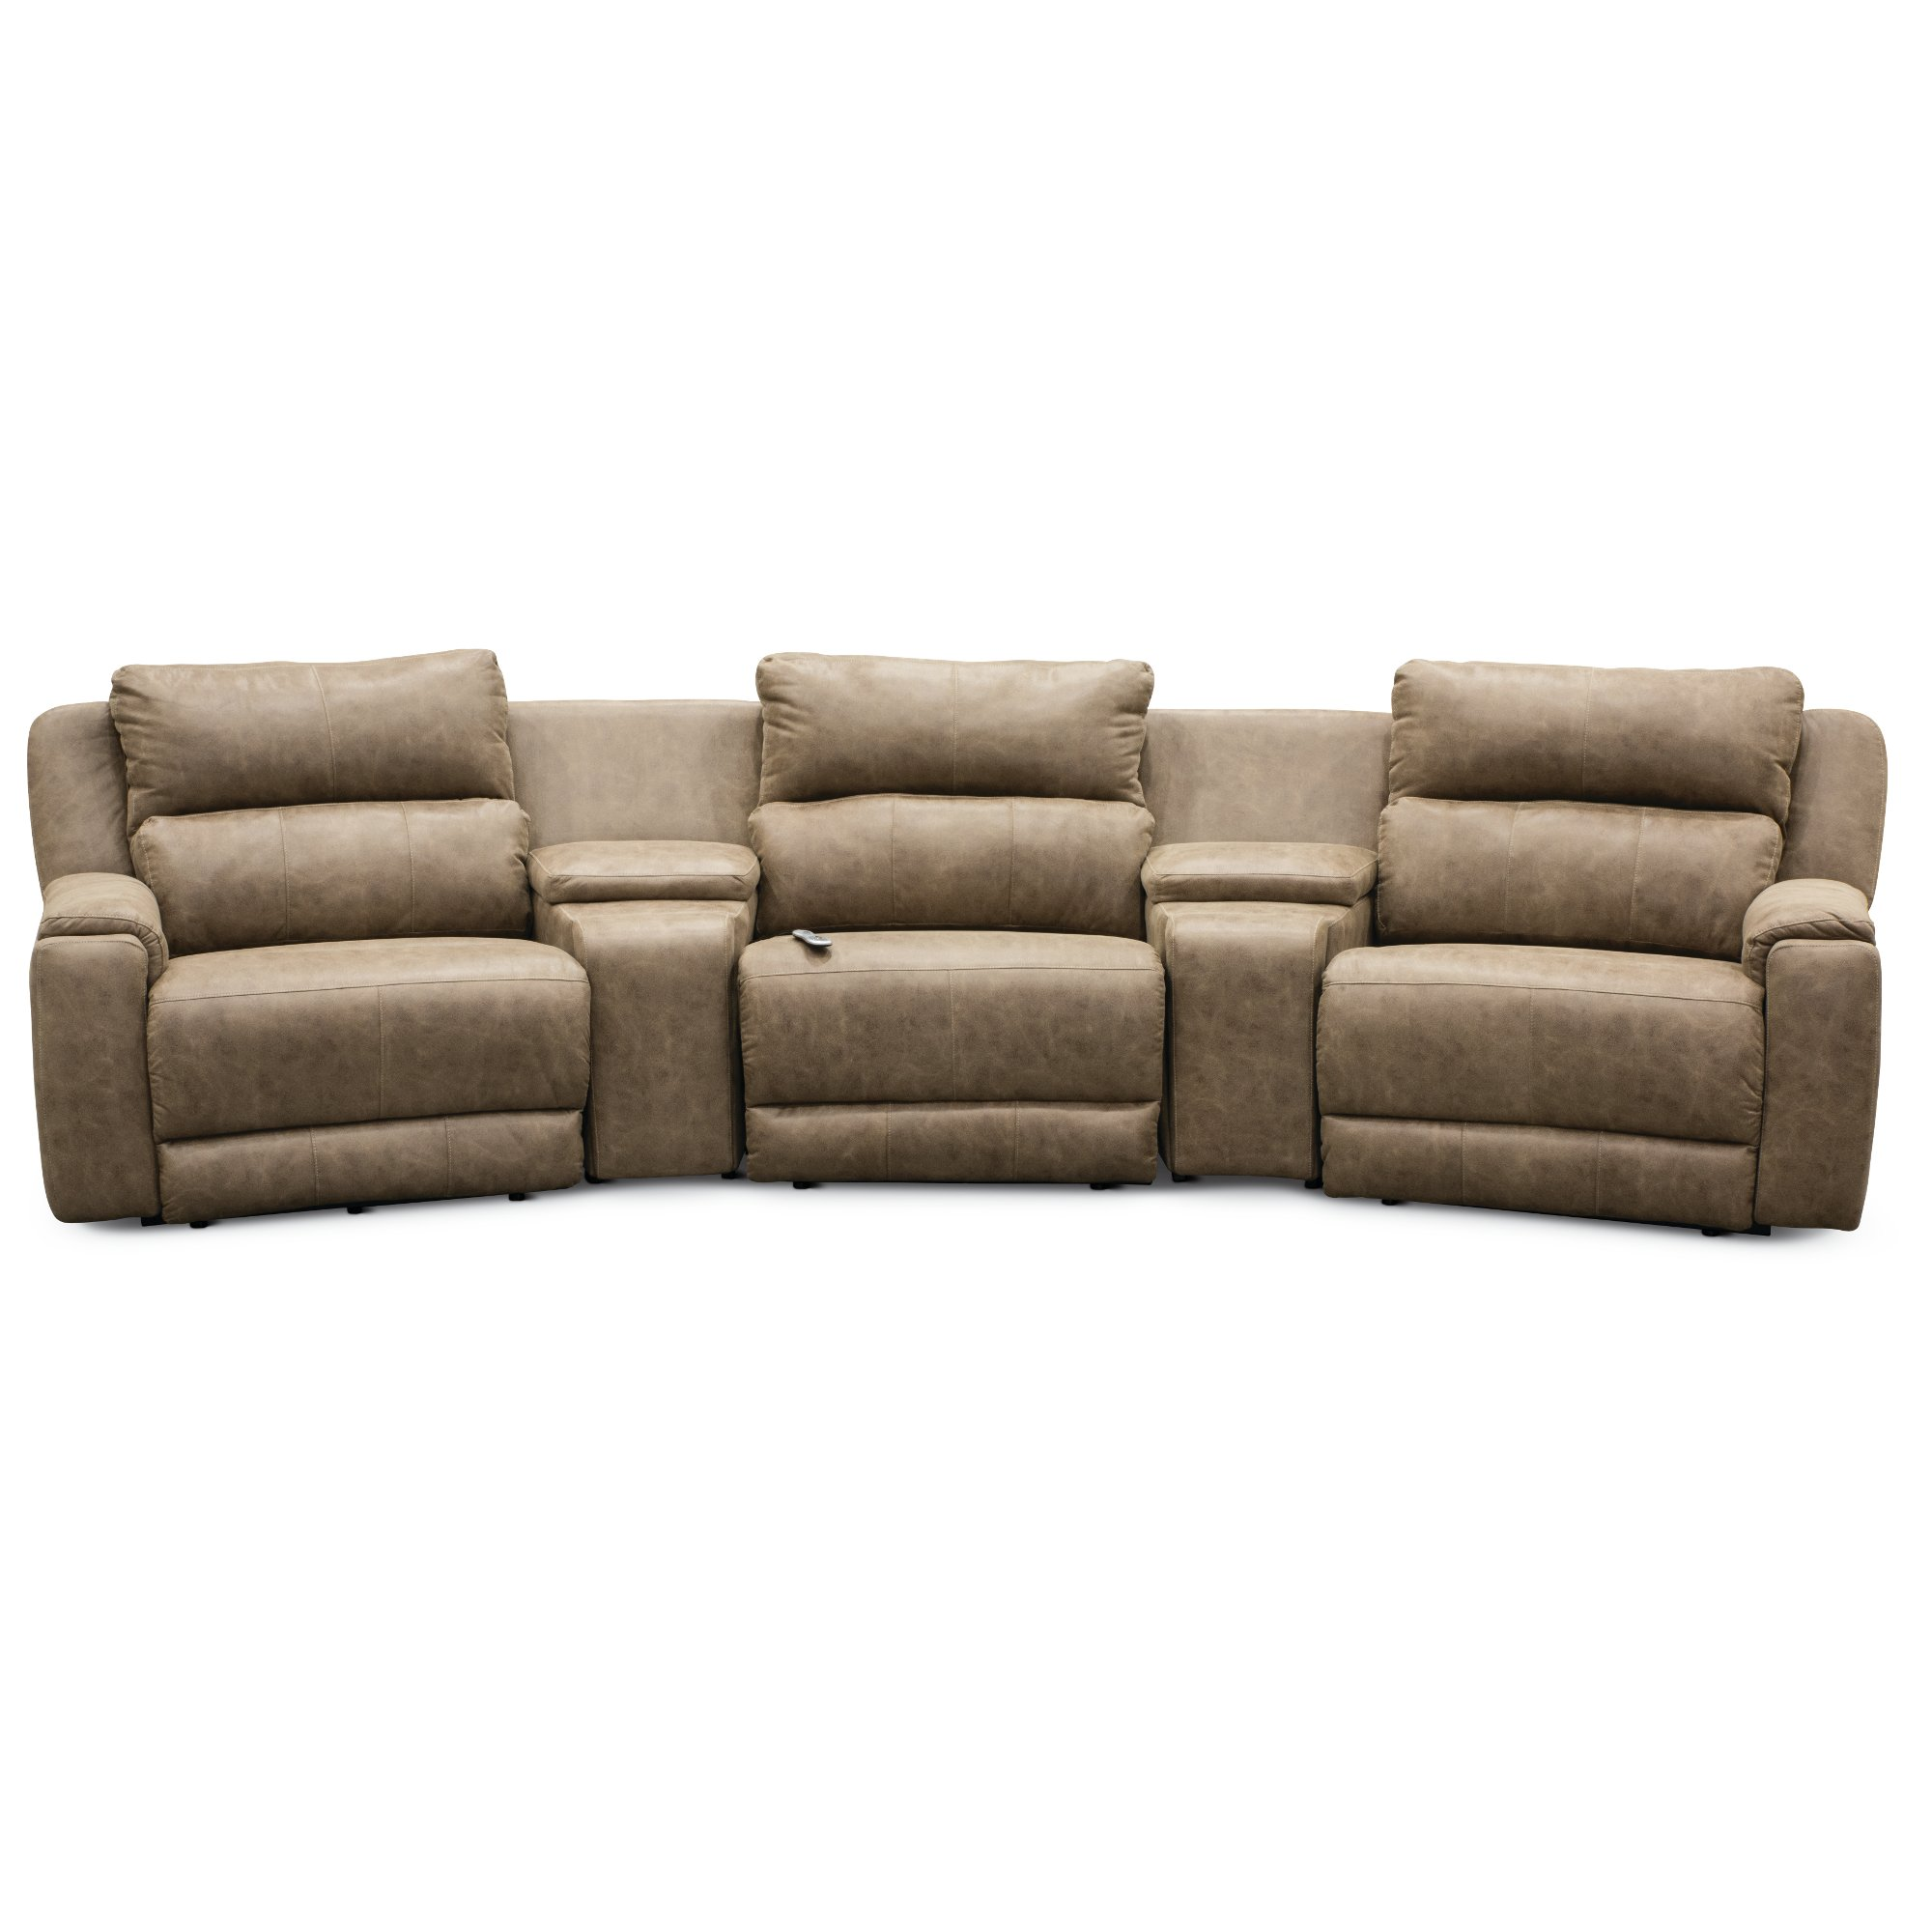 Magnificent Vintage Taupe 5 Piece Power Reclining Sectional Sofa Dazzle Evergreenethics Interior Chair Design Evergreenethicsorg